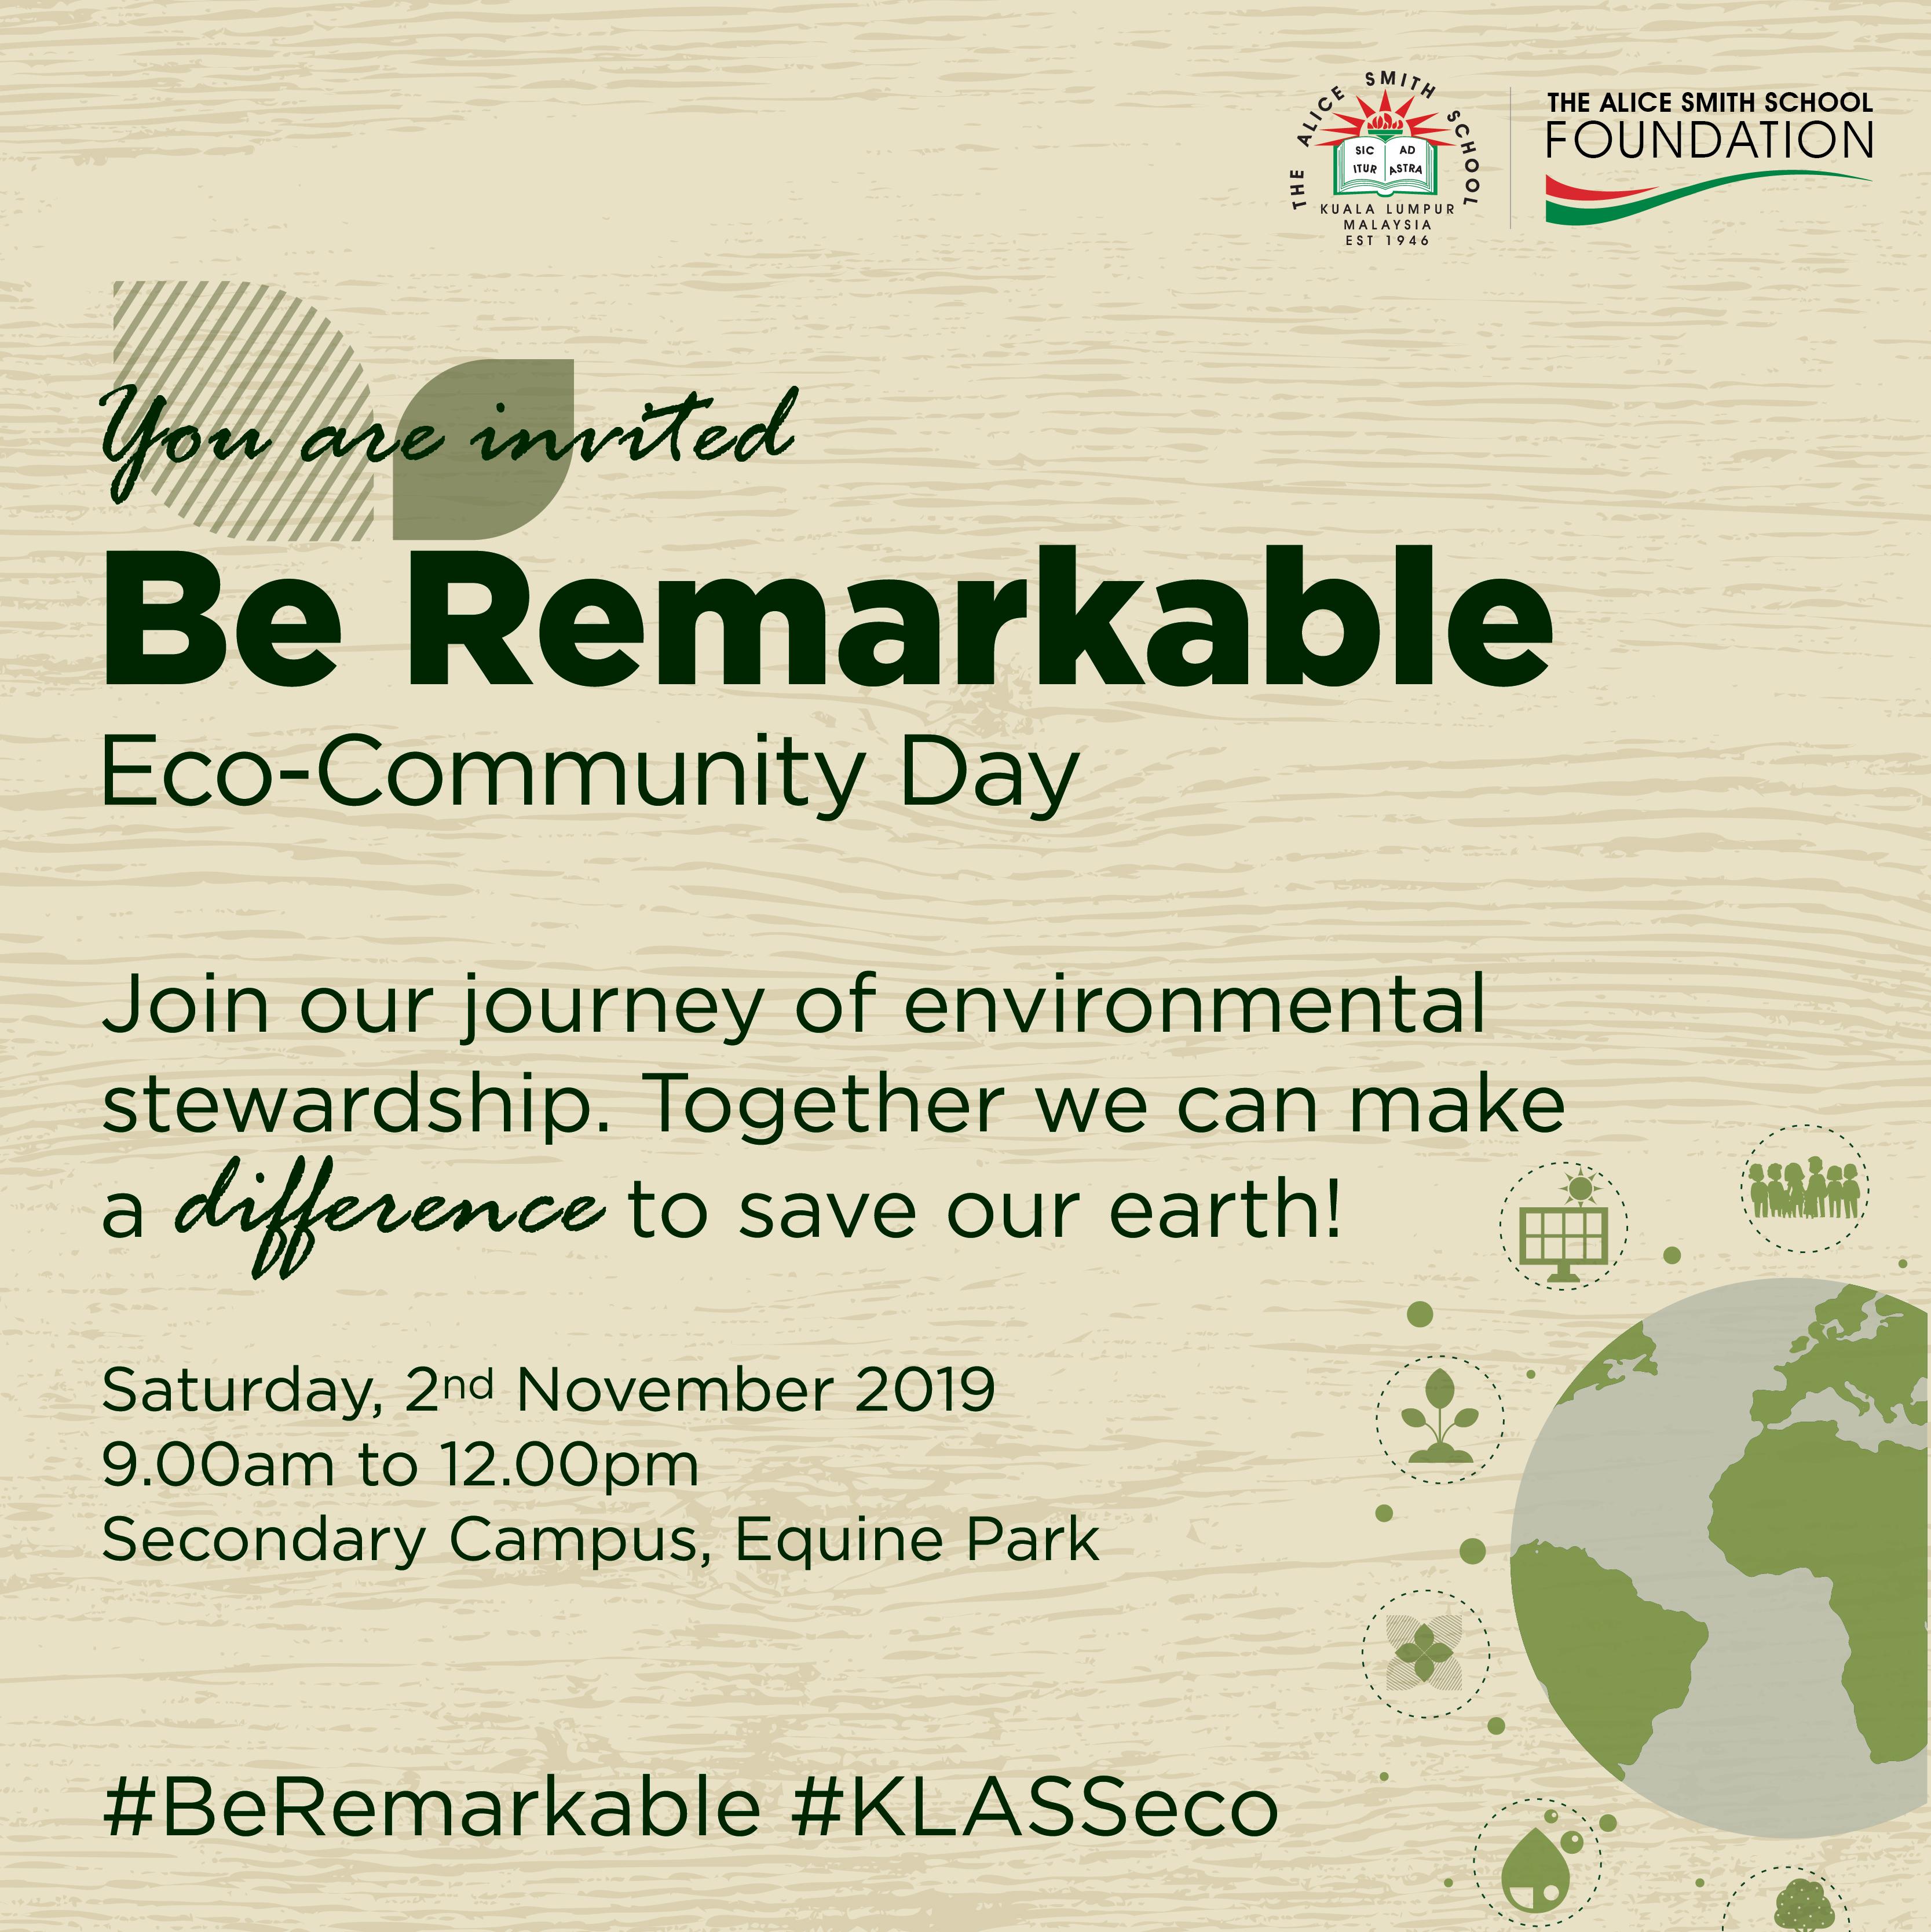 Join our Eco-Community Day